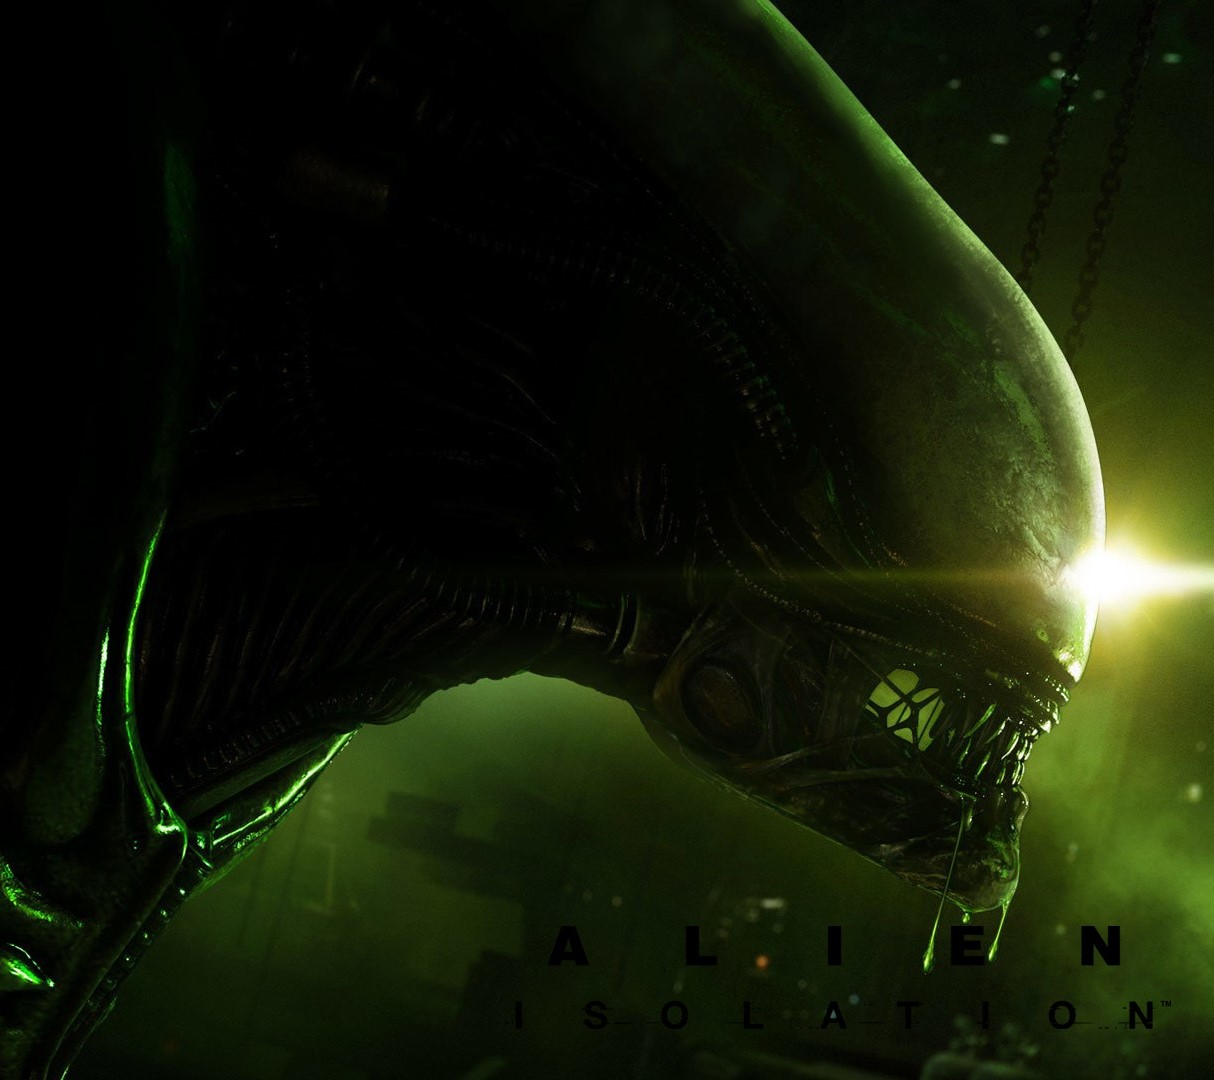 alien_isolation_game-1920x1080 (2)